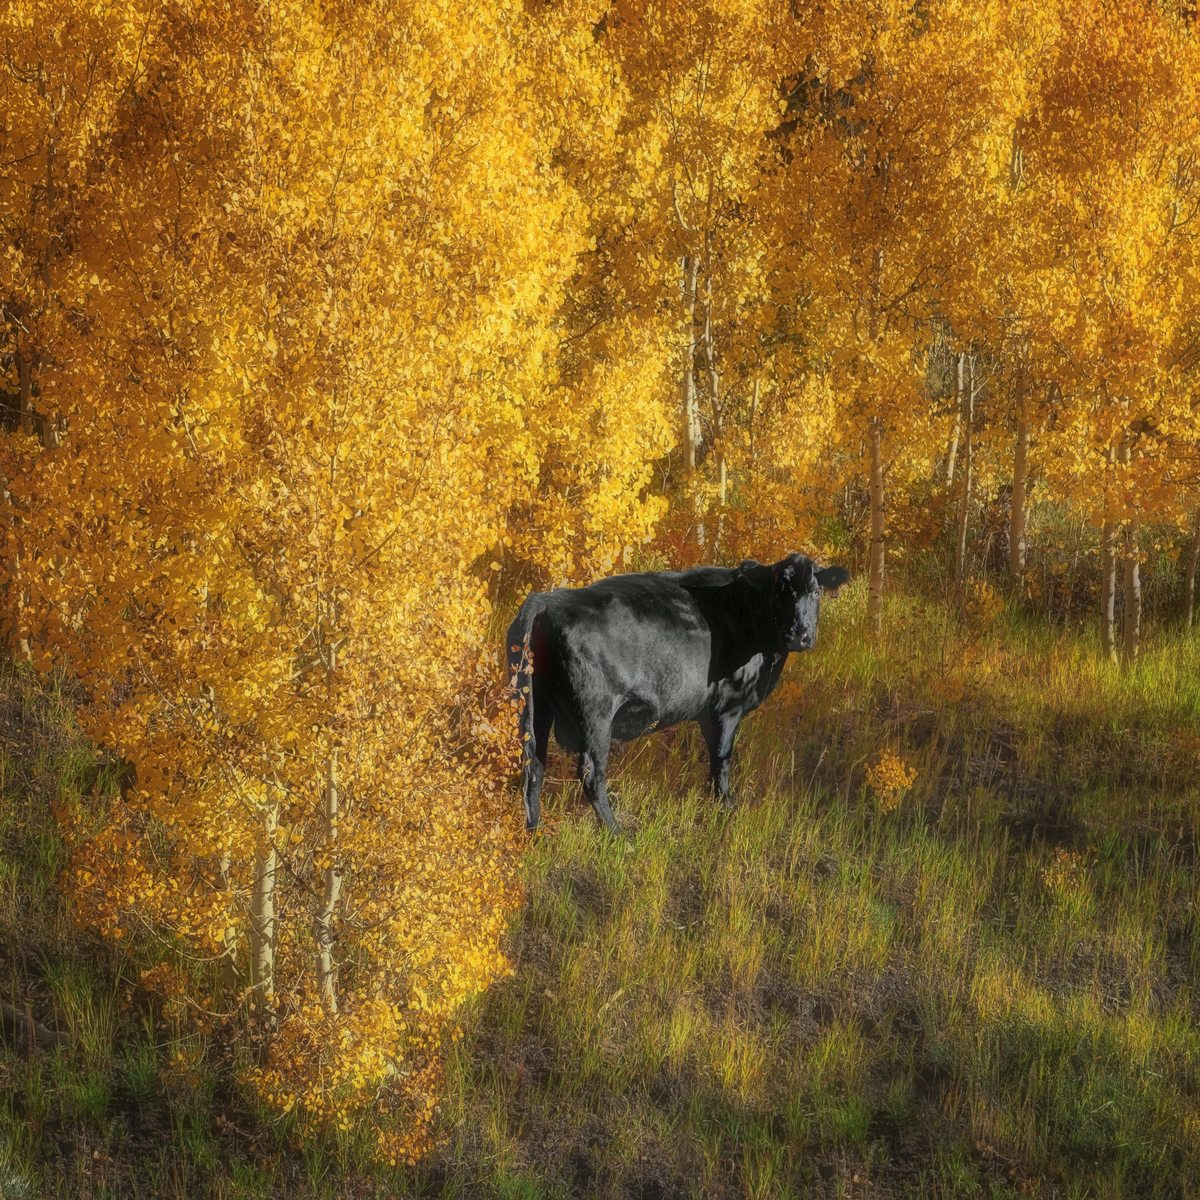 The Cow's in the Aspen